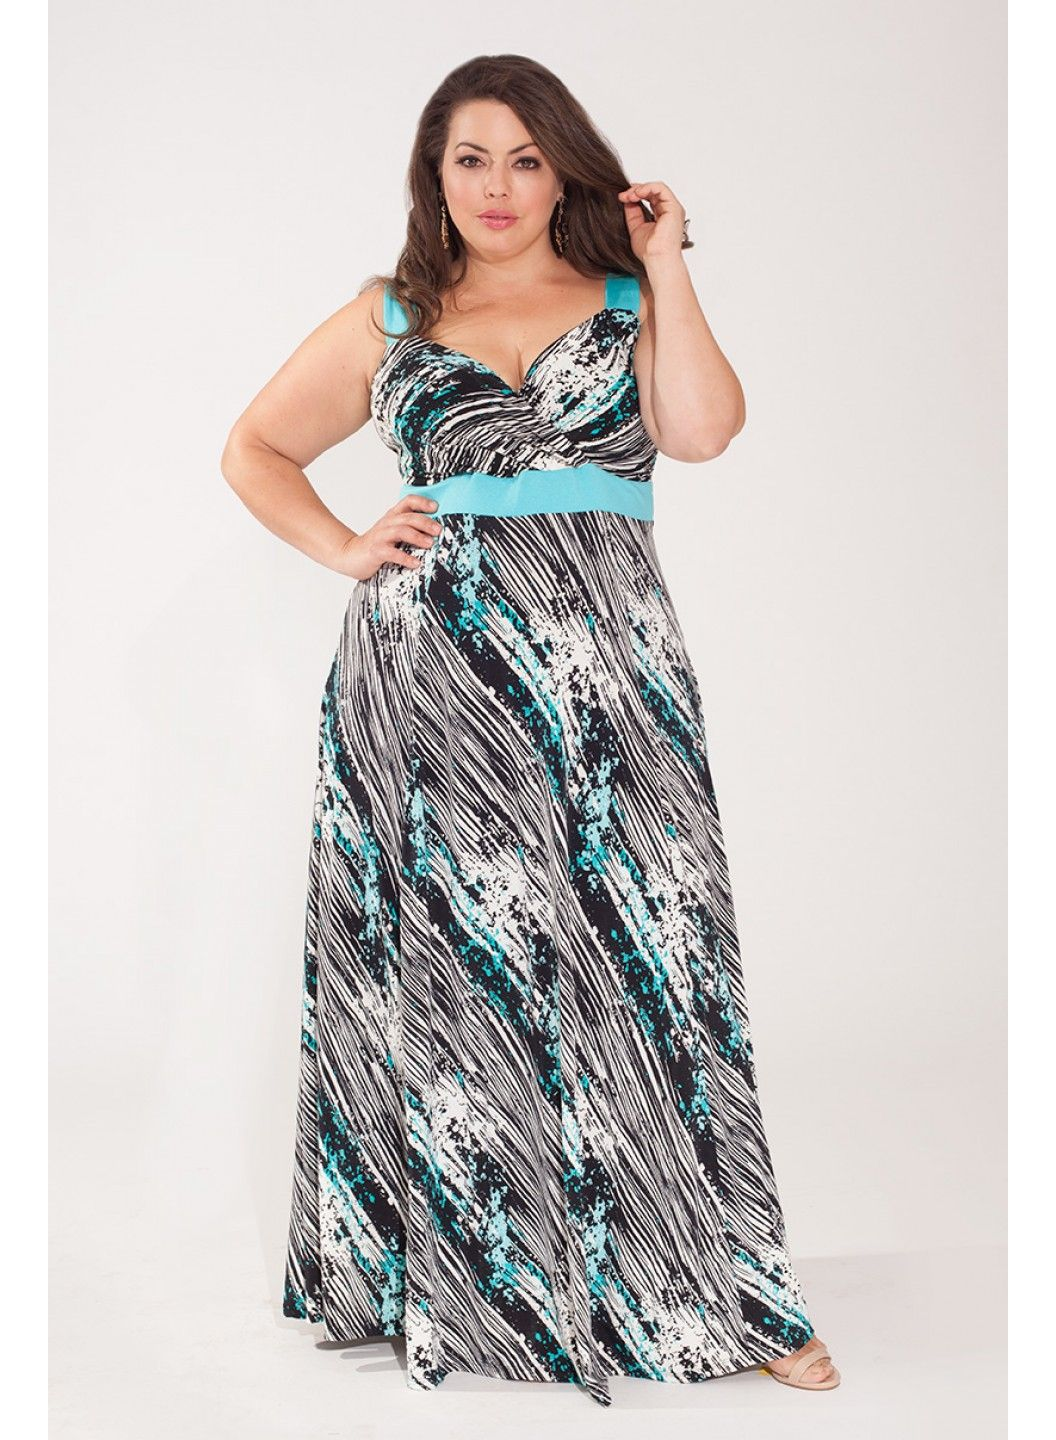 Reflections maxi dress in azure plus size clothing pinterest